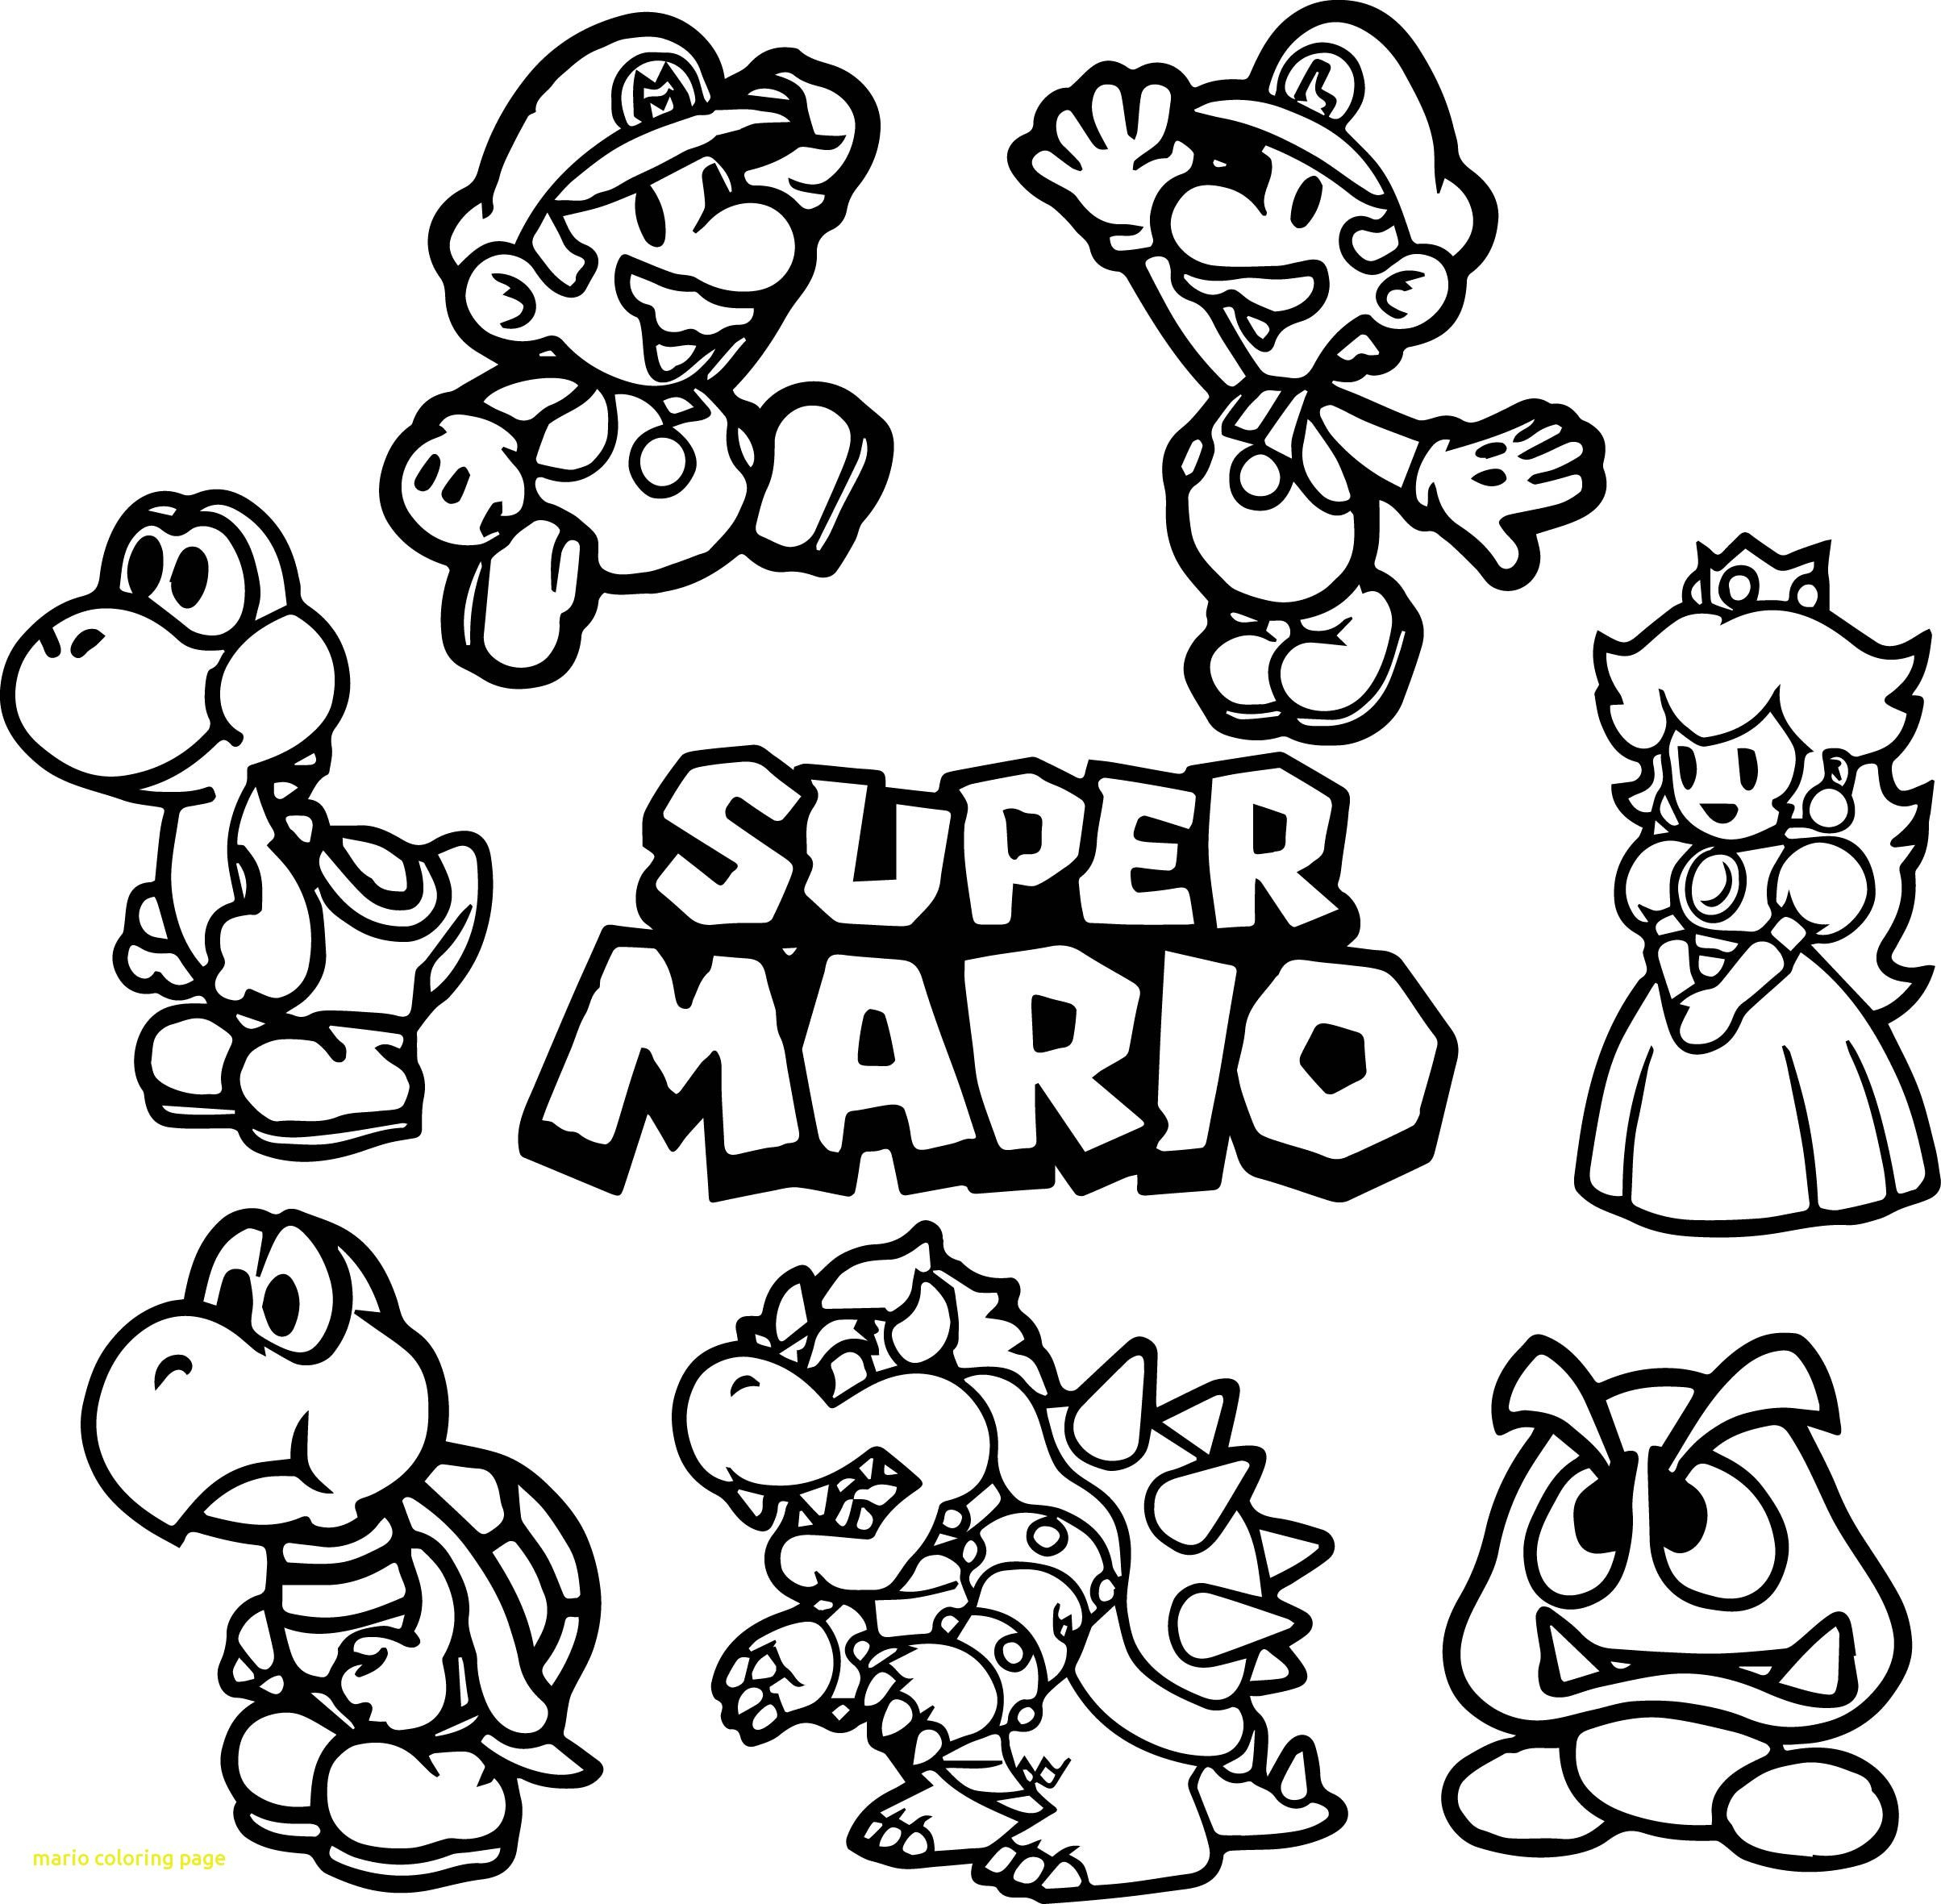 Awesome Coloring Pages Mario Printable In Pretty Free Printable Gallery Of Toad Mario Drawing at Getdrawings Gallery